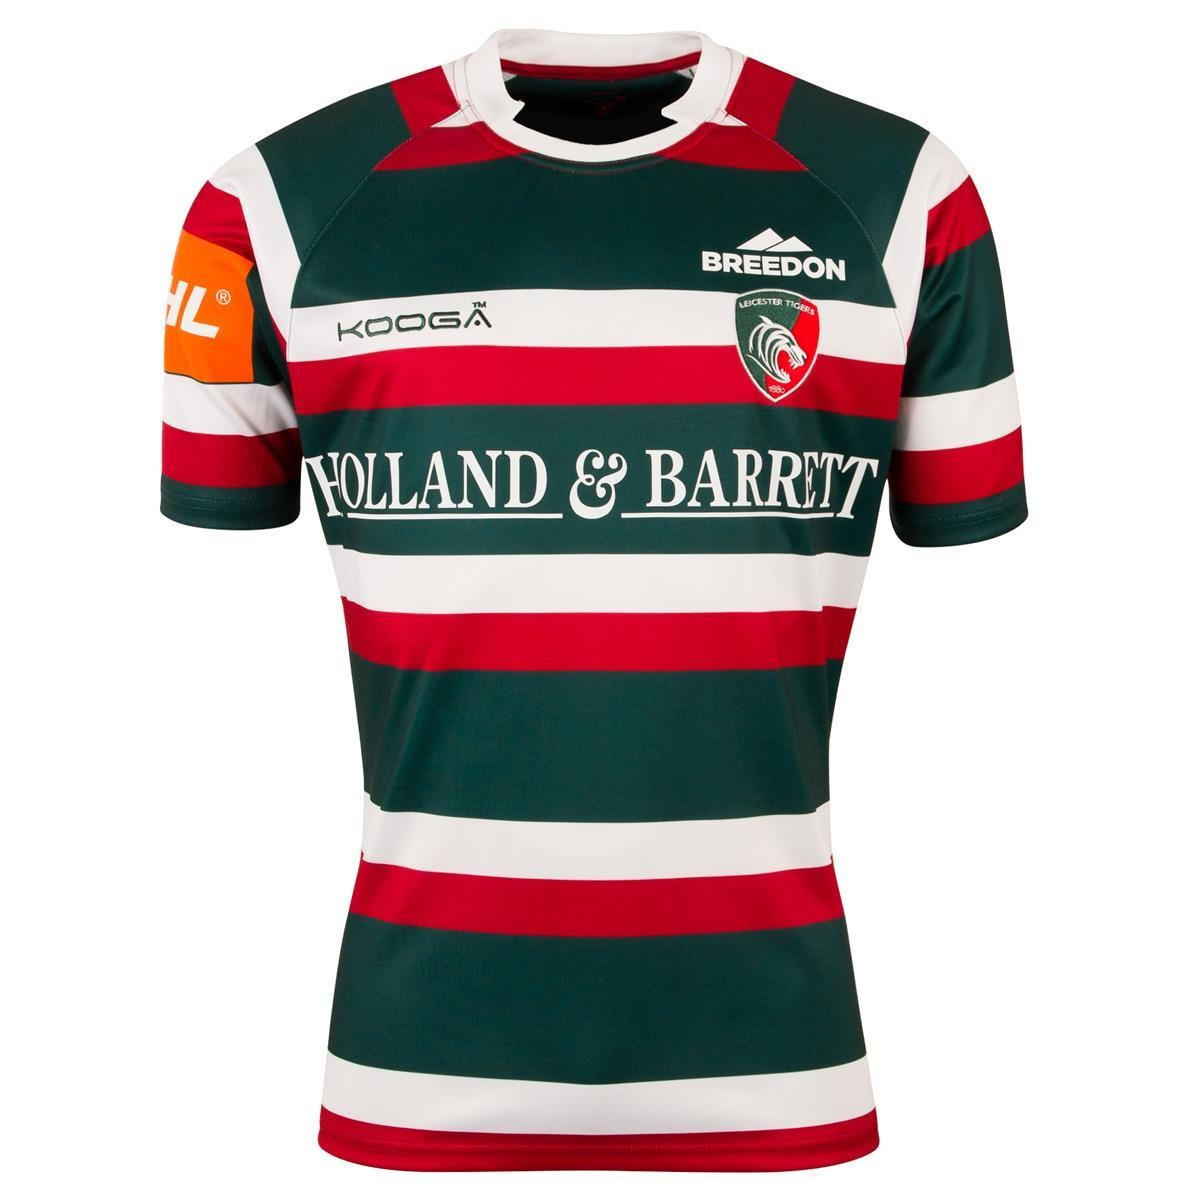 Kooga Leicester Tigers Home Replica Rugby Shirt 2016/17